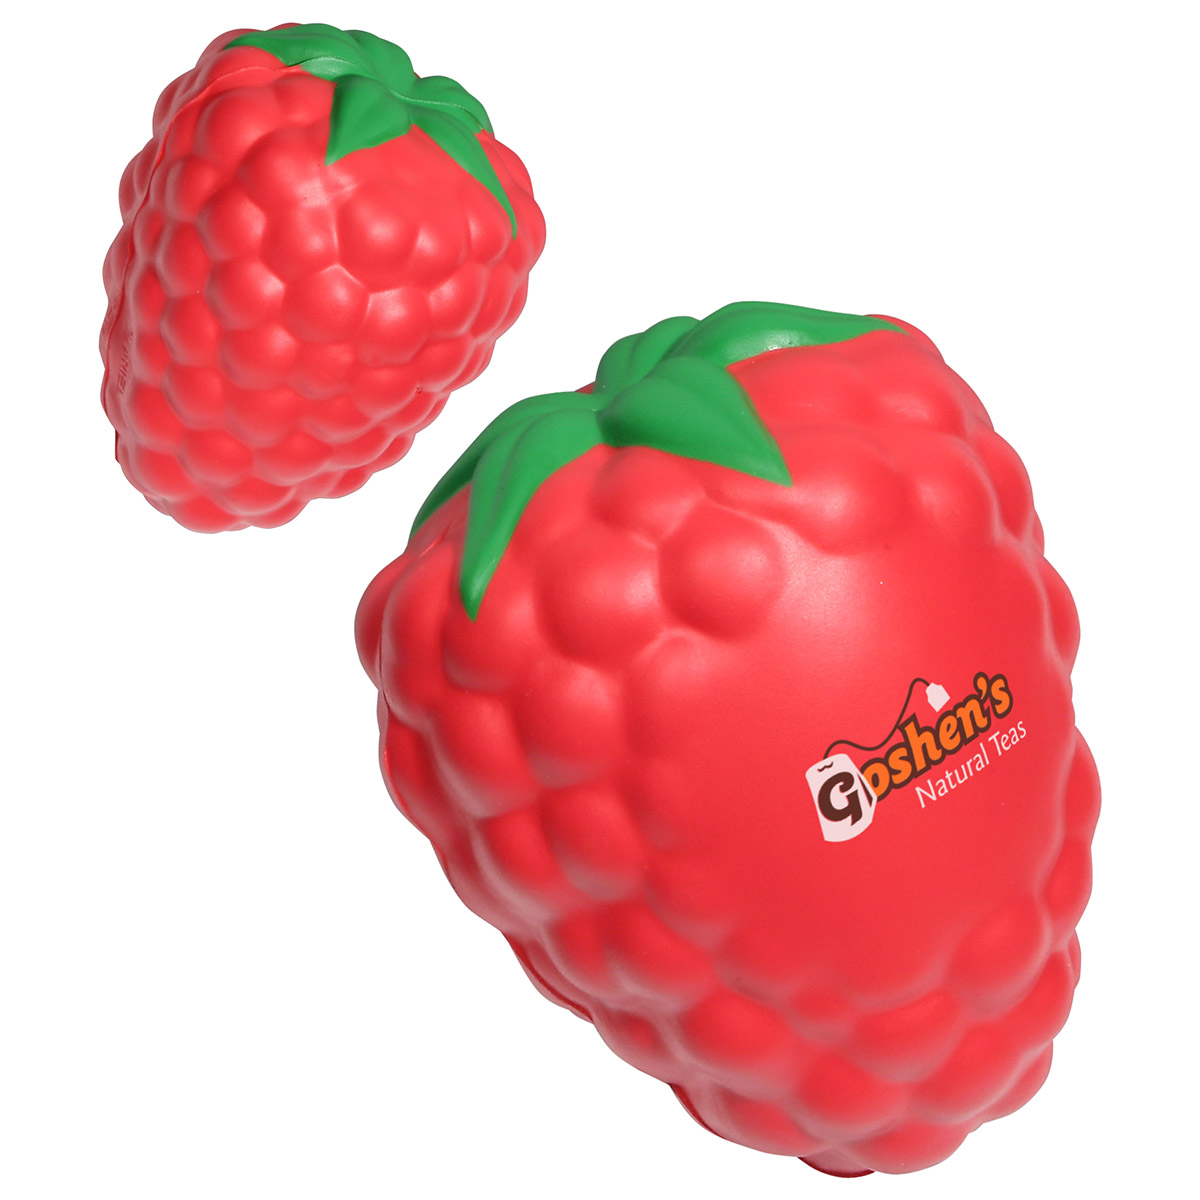 Raspberry w/ Leaf Stress Reliever, LFR-RB10 - 1 Colour Imprint